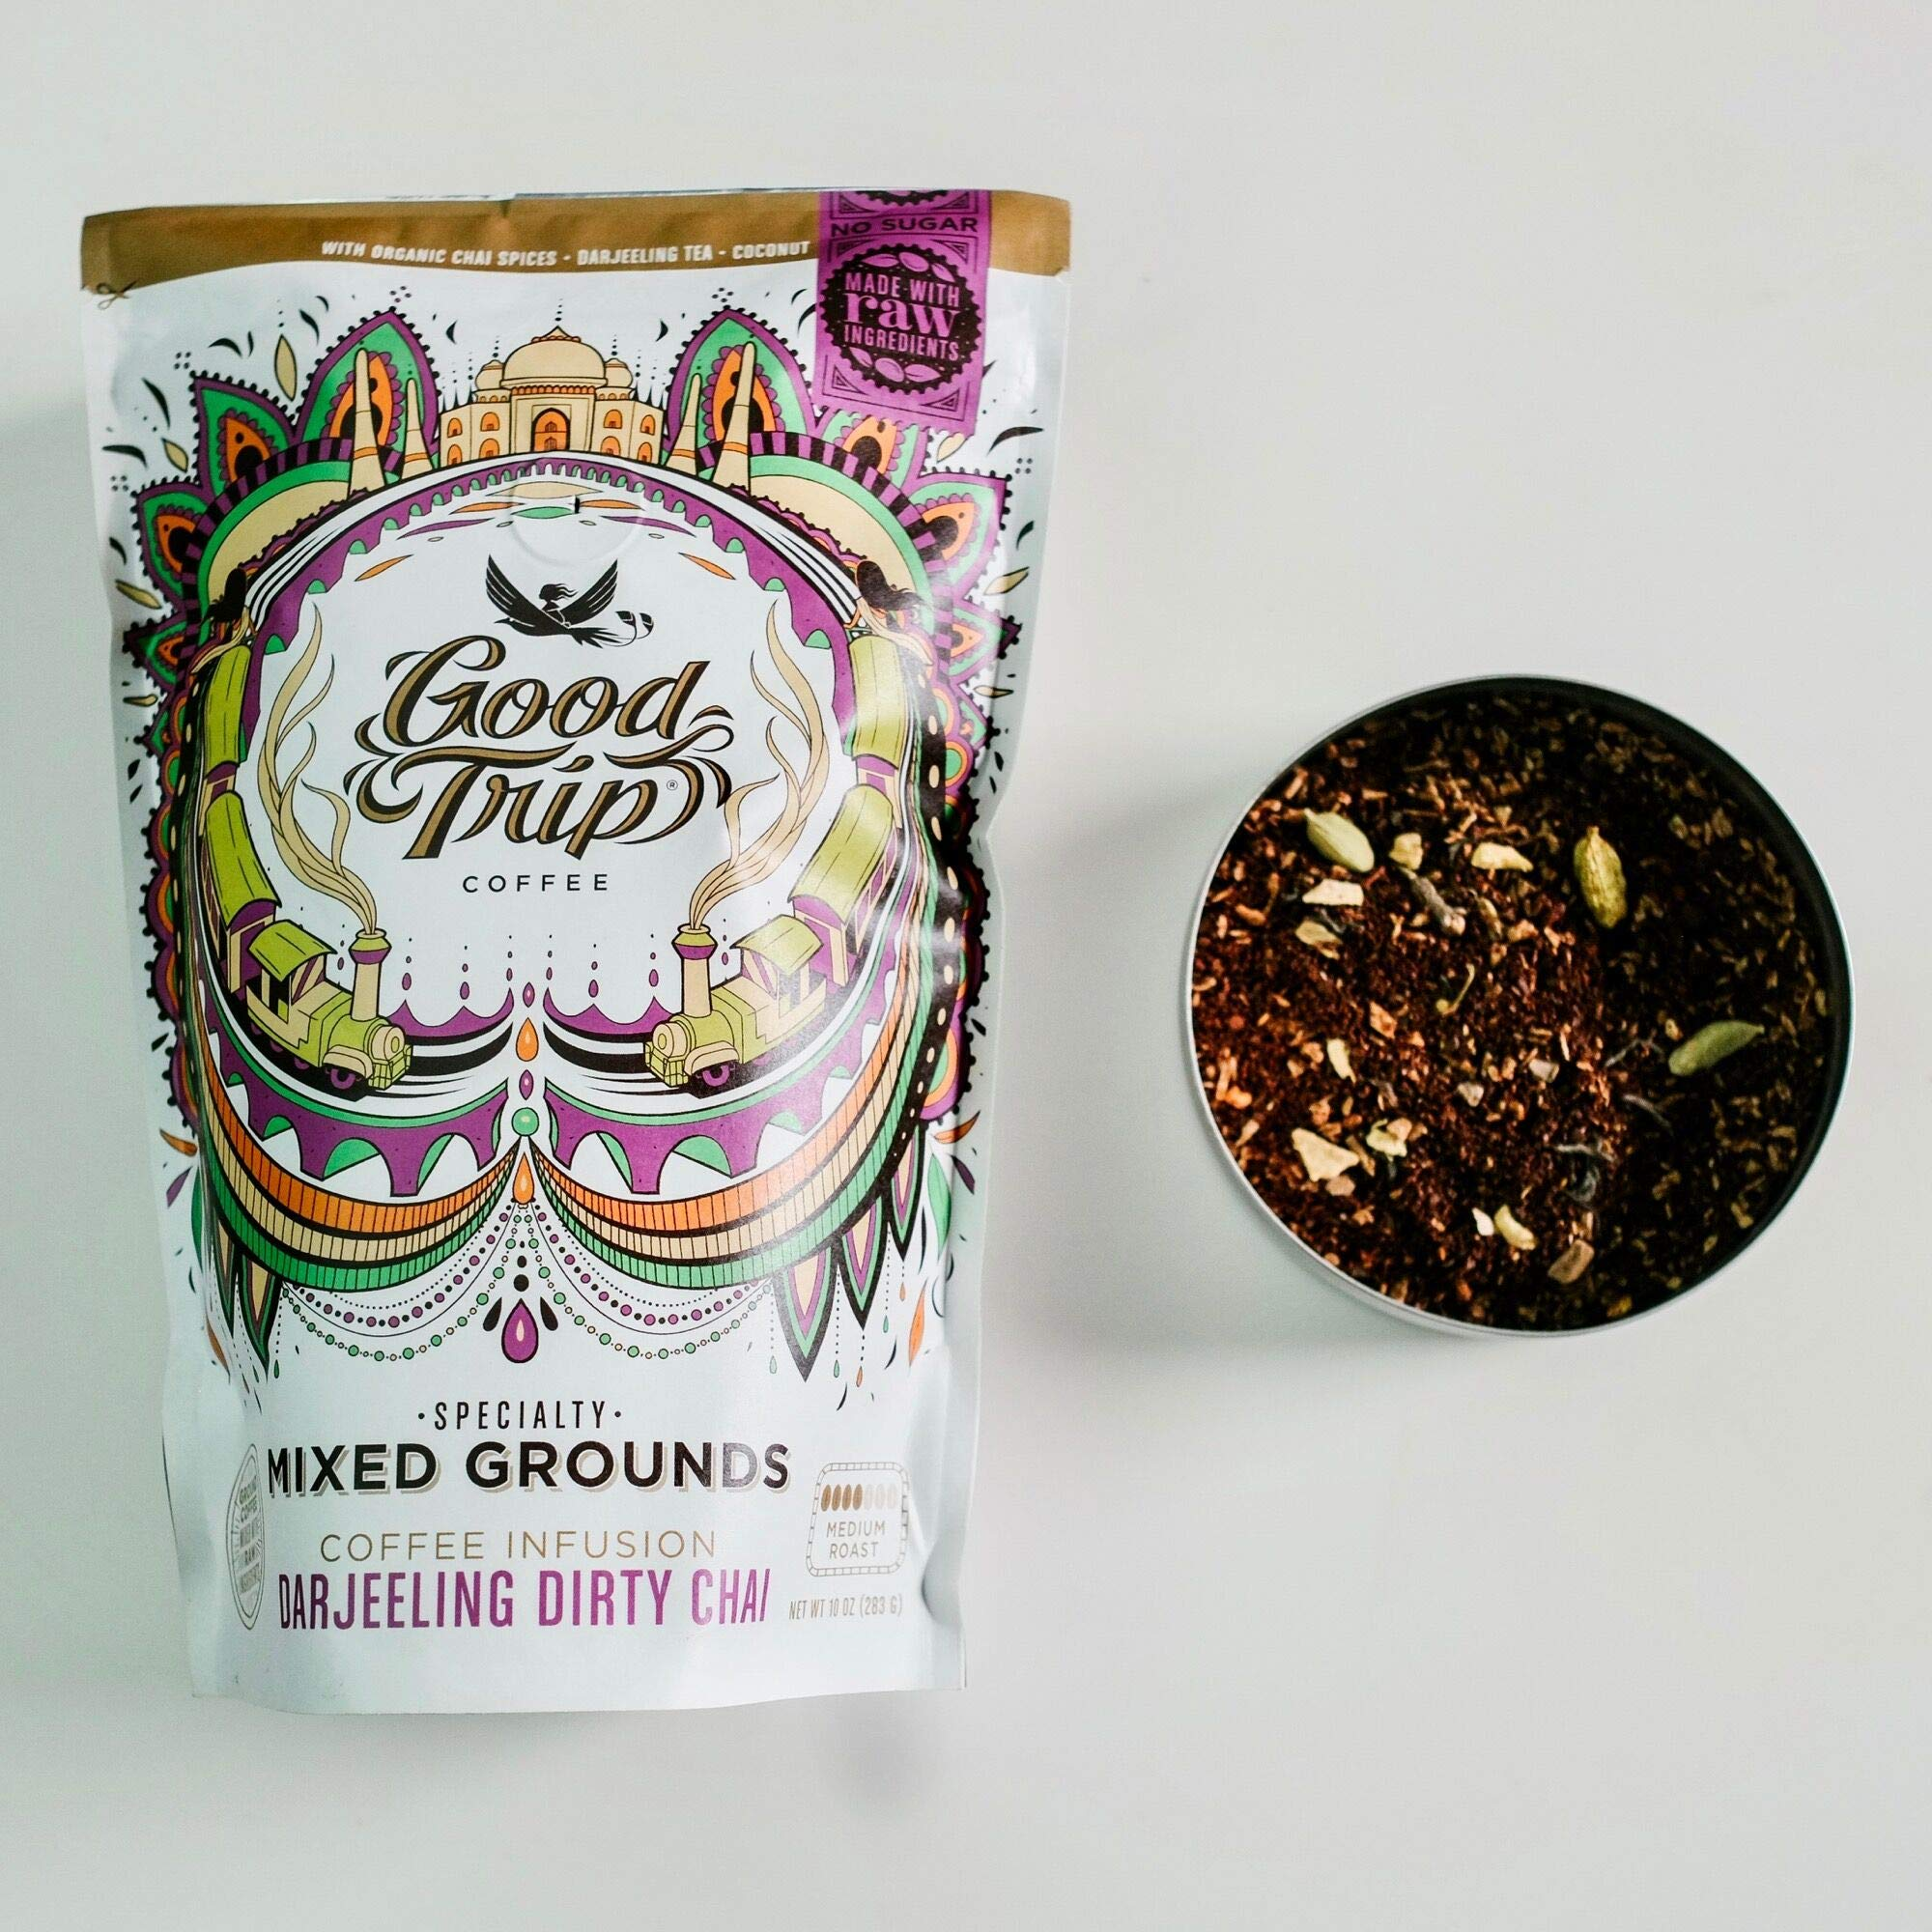 Good Trip: Darjeeling Dirty Chai ~ As Seen in Anthropologie | Organic Coffee Infusion Mixed w/ Tea, Spices & Coconut | Vegan, GF, Keto, Non-GMO | (Coarse Ground for Cold Brew or French Press), 10 oz